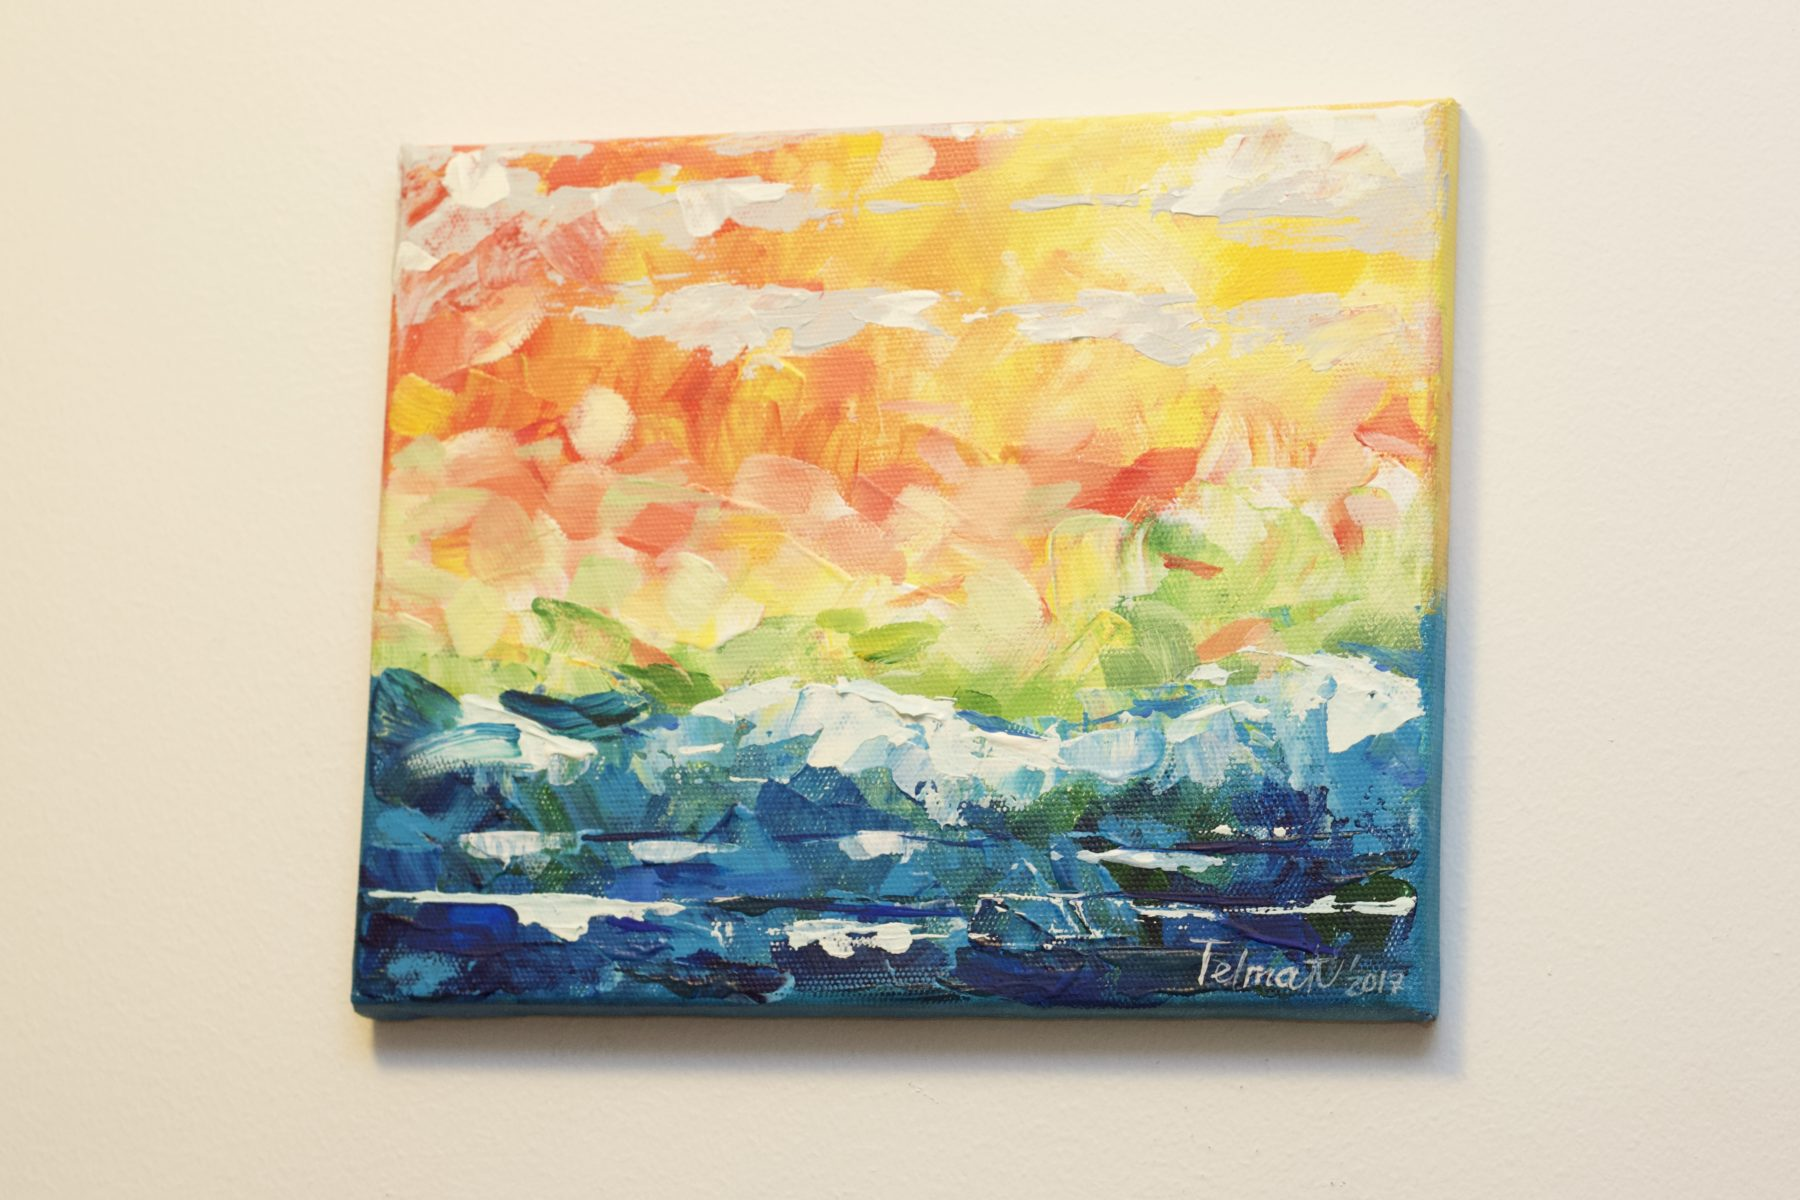 Acciaroli 2017 December - Abstract painting course by Immonen-Lindberg Helka